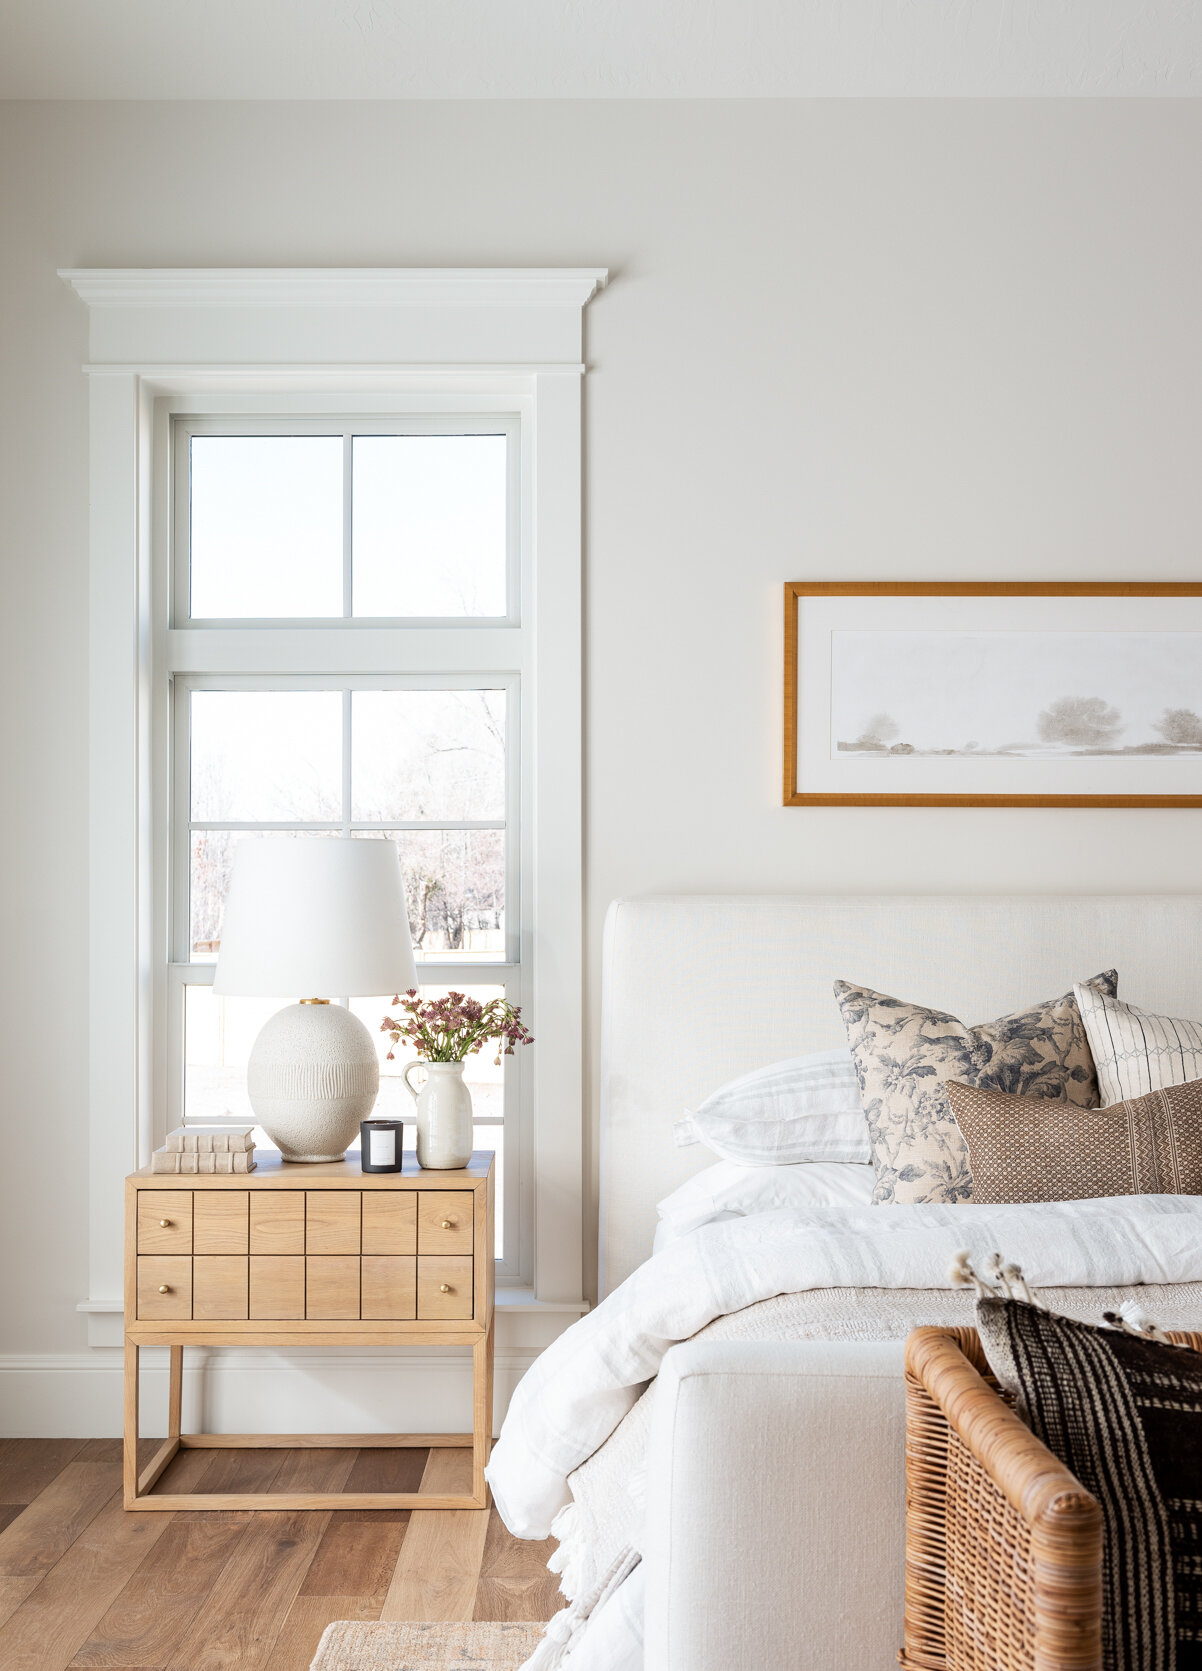 The Best White Paint Colors For Every Home,Van Gogh Bedroom In Arles Original